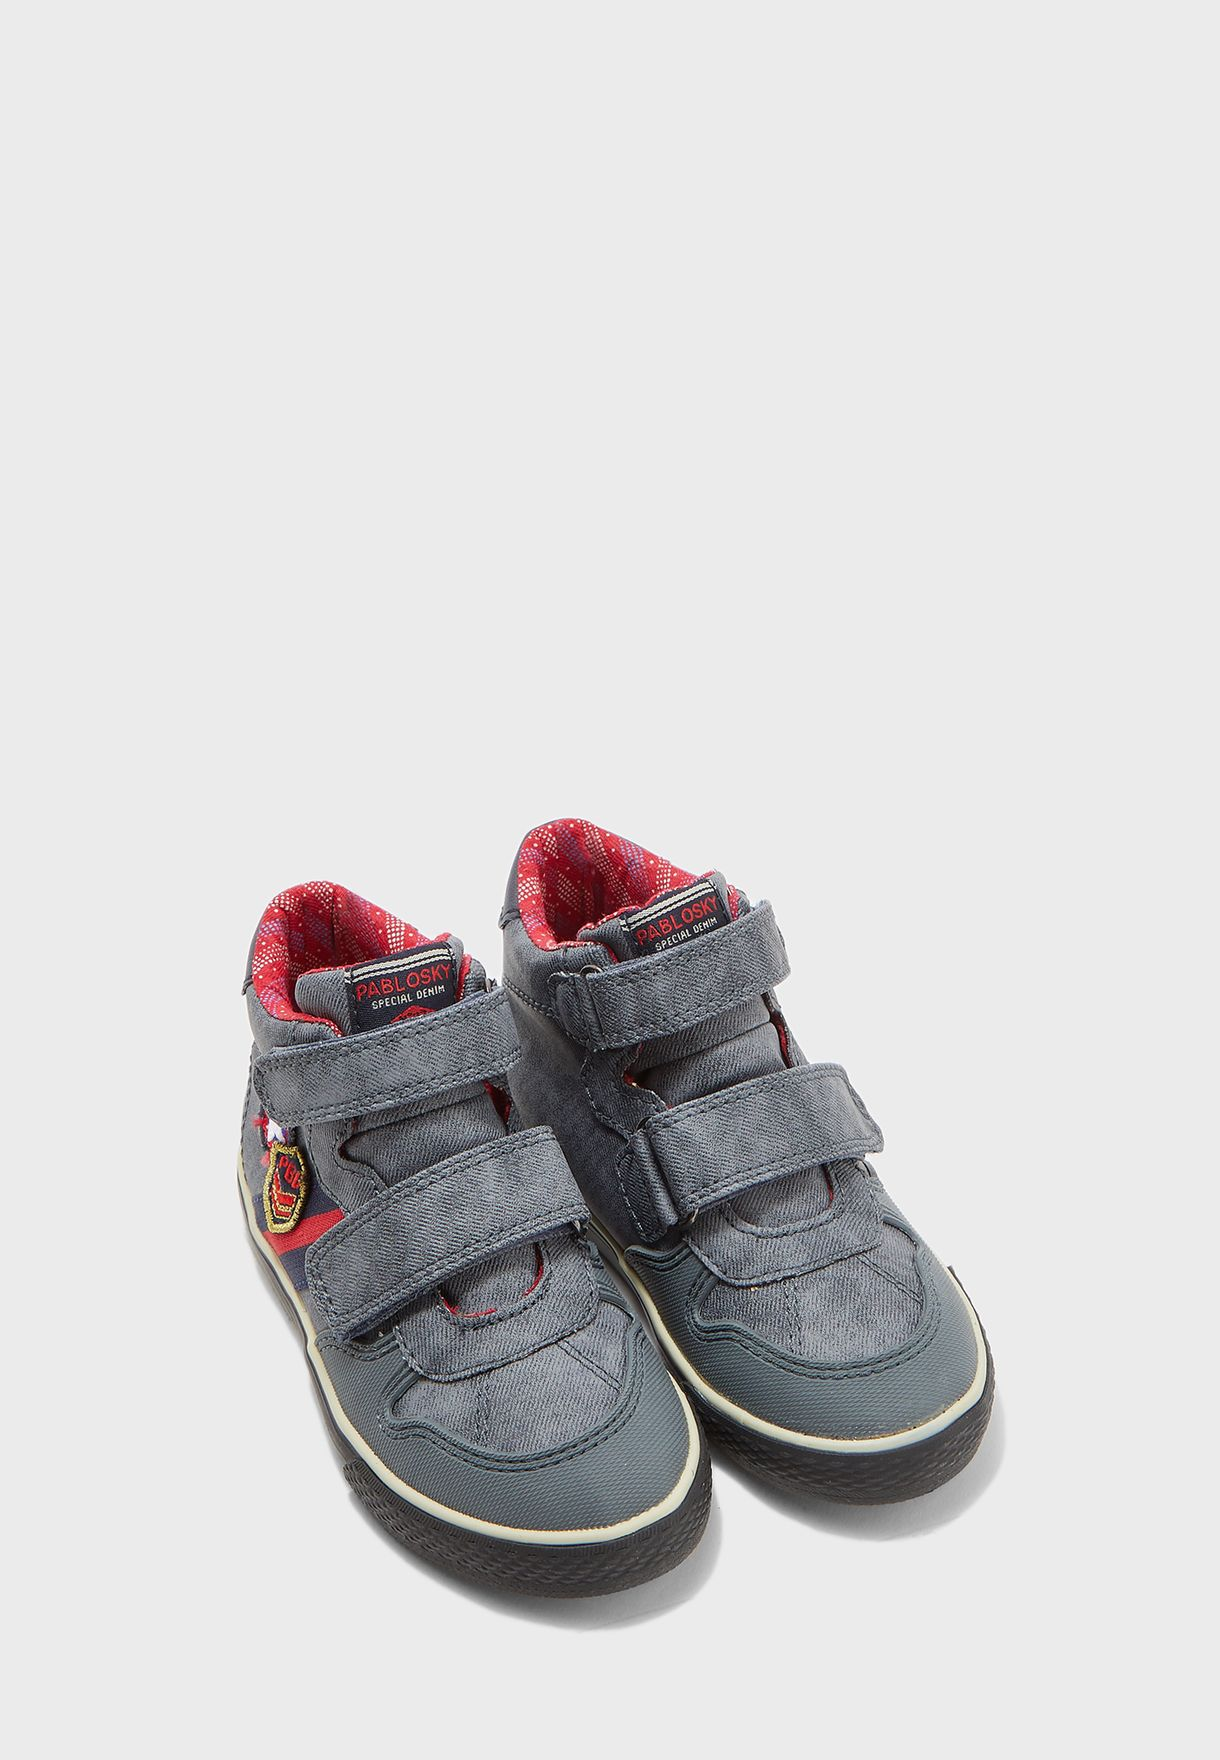 Youth Double Strap Sneaker